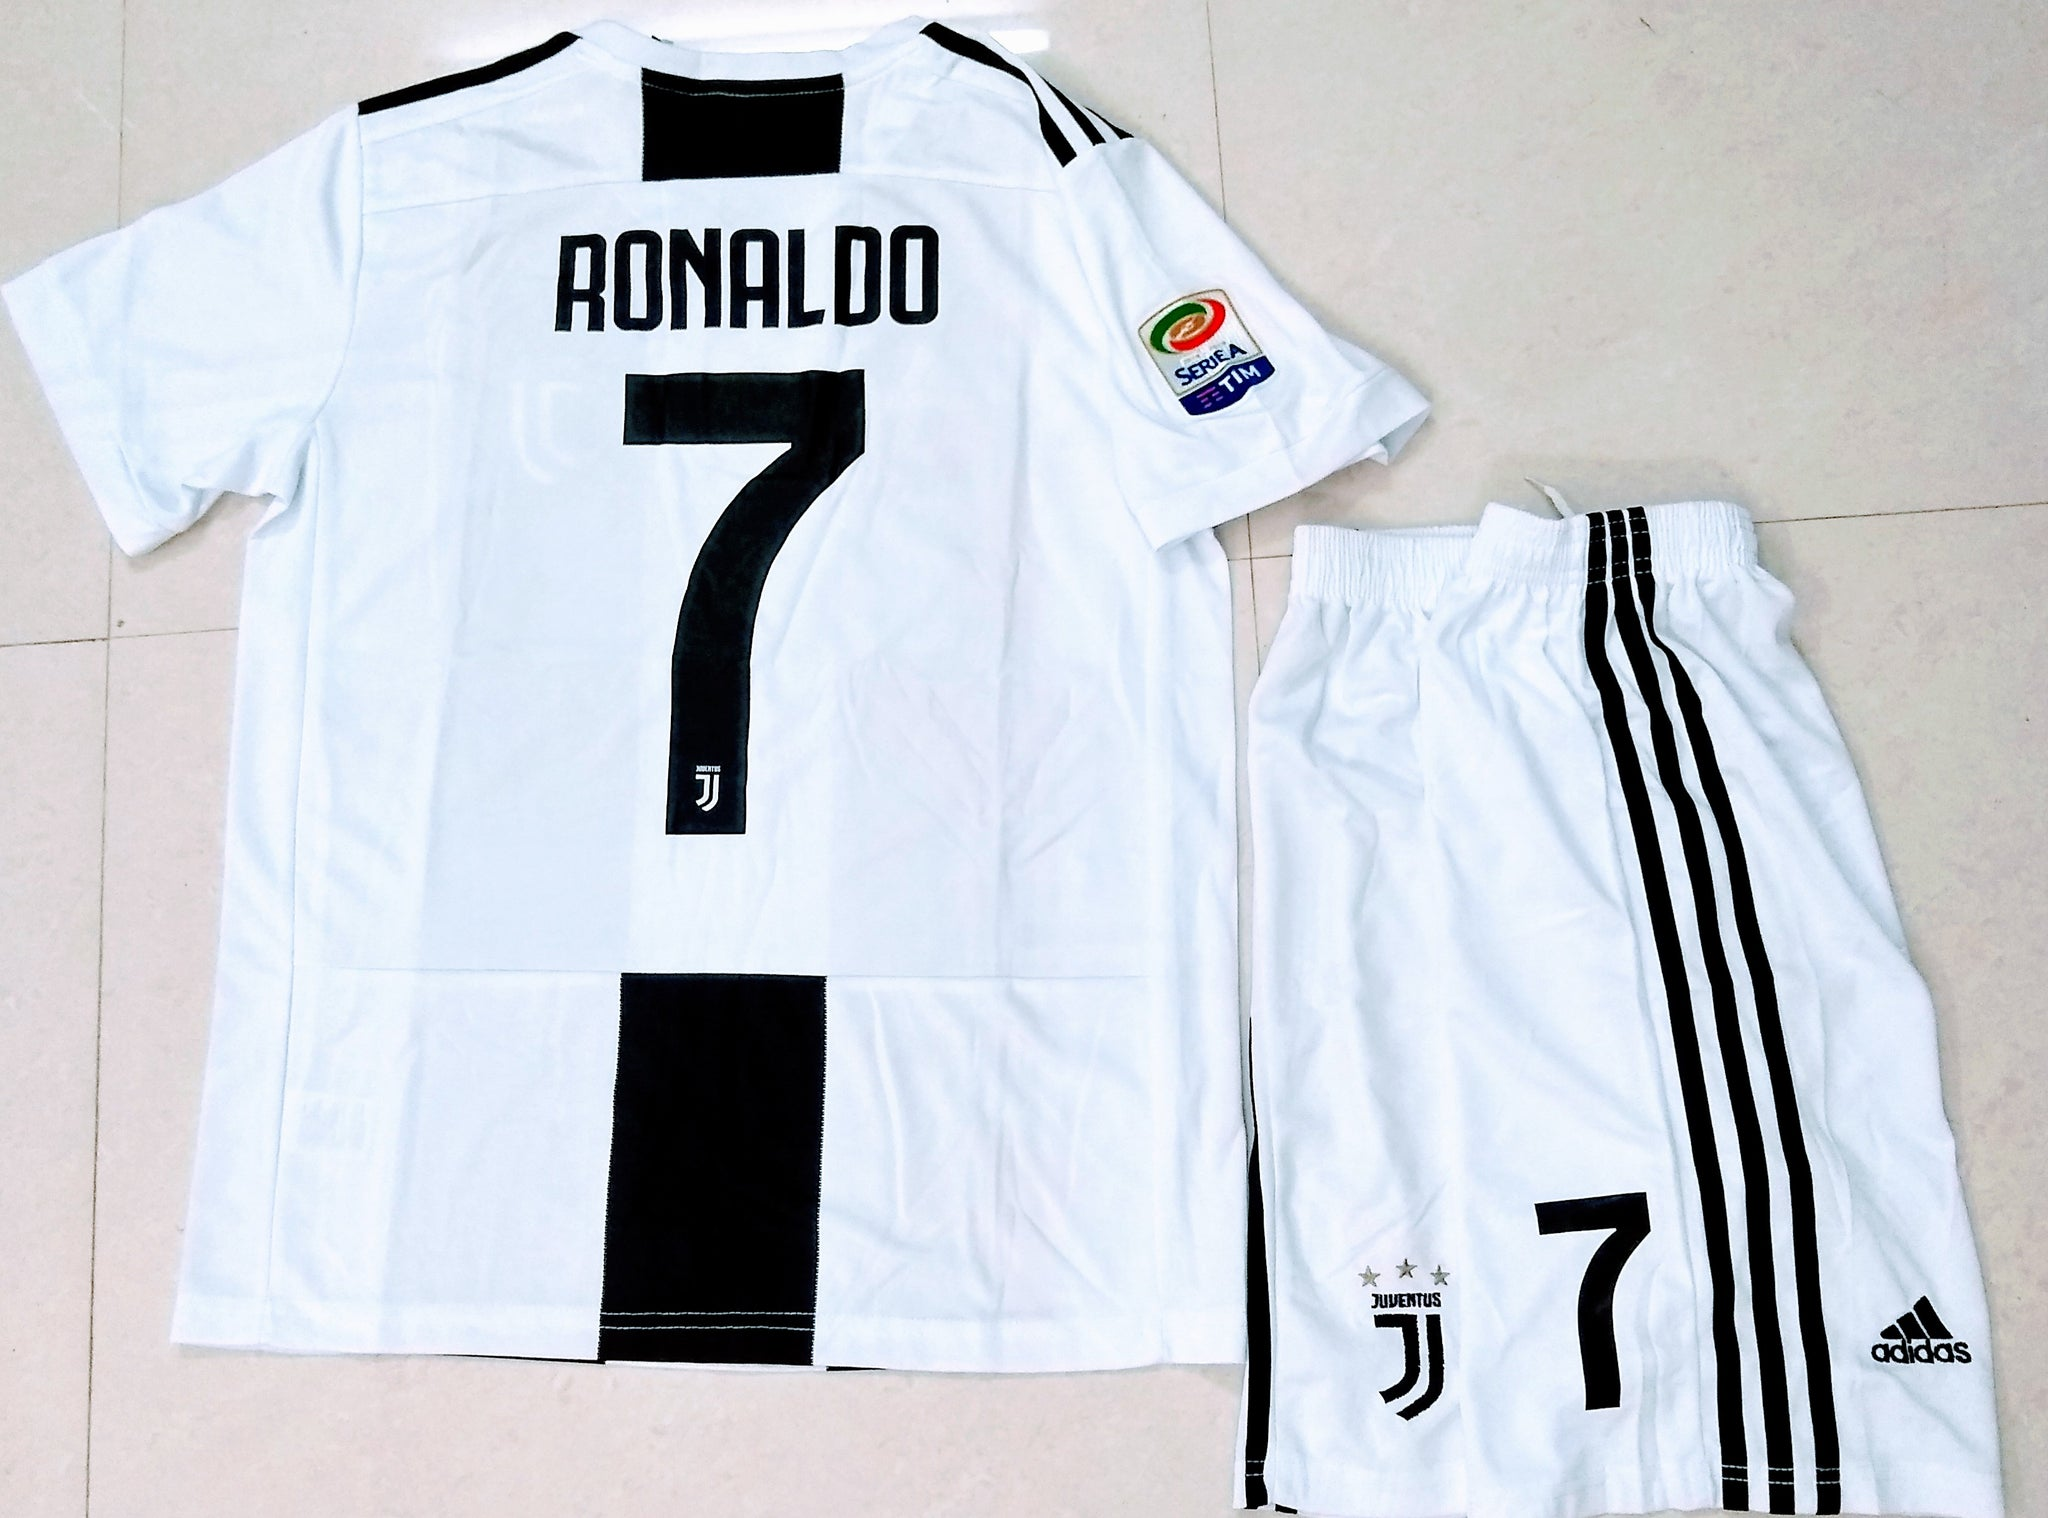 info for a7eb3 b41e0 Original Ronaldo Juventus Premium Home Jersey and Shorts [Optional] 2018-19  (with Italia logos)